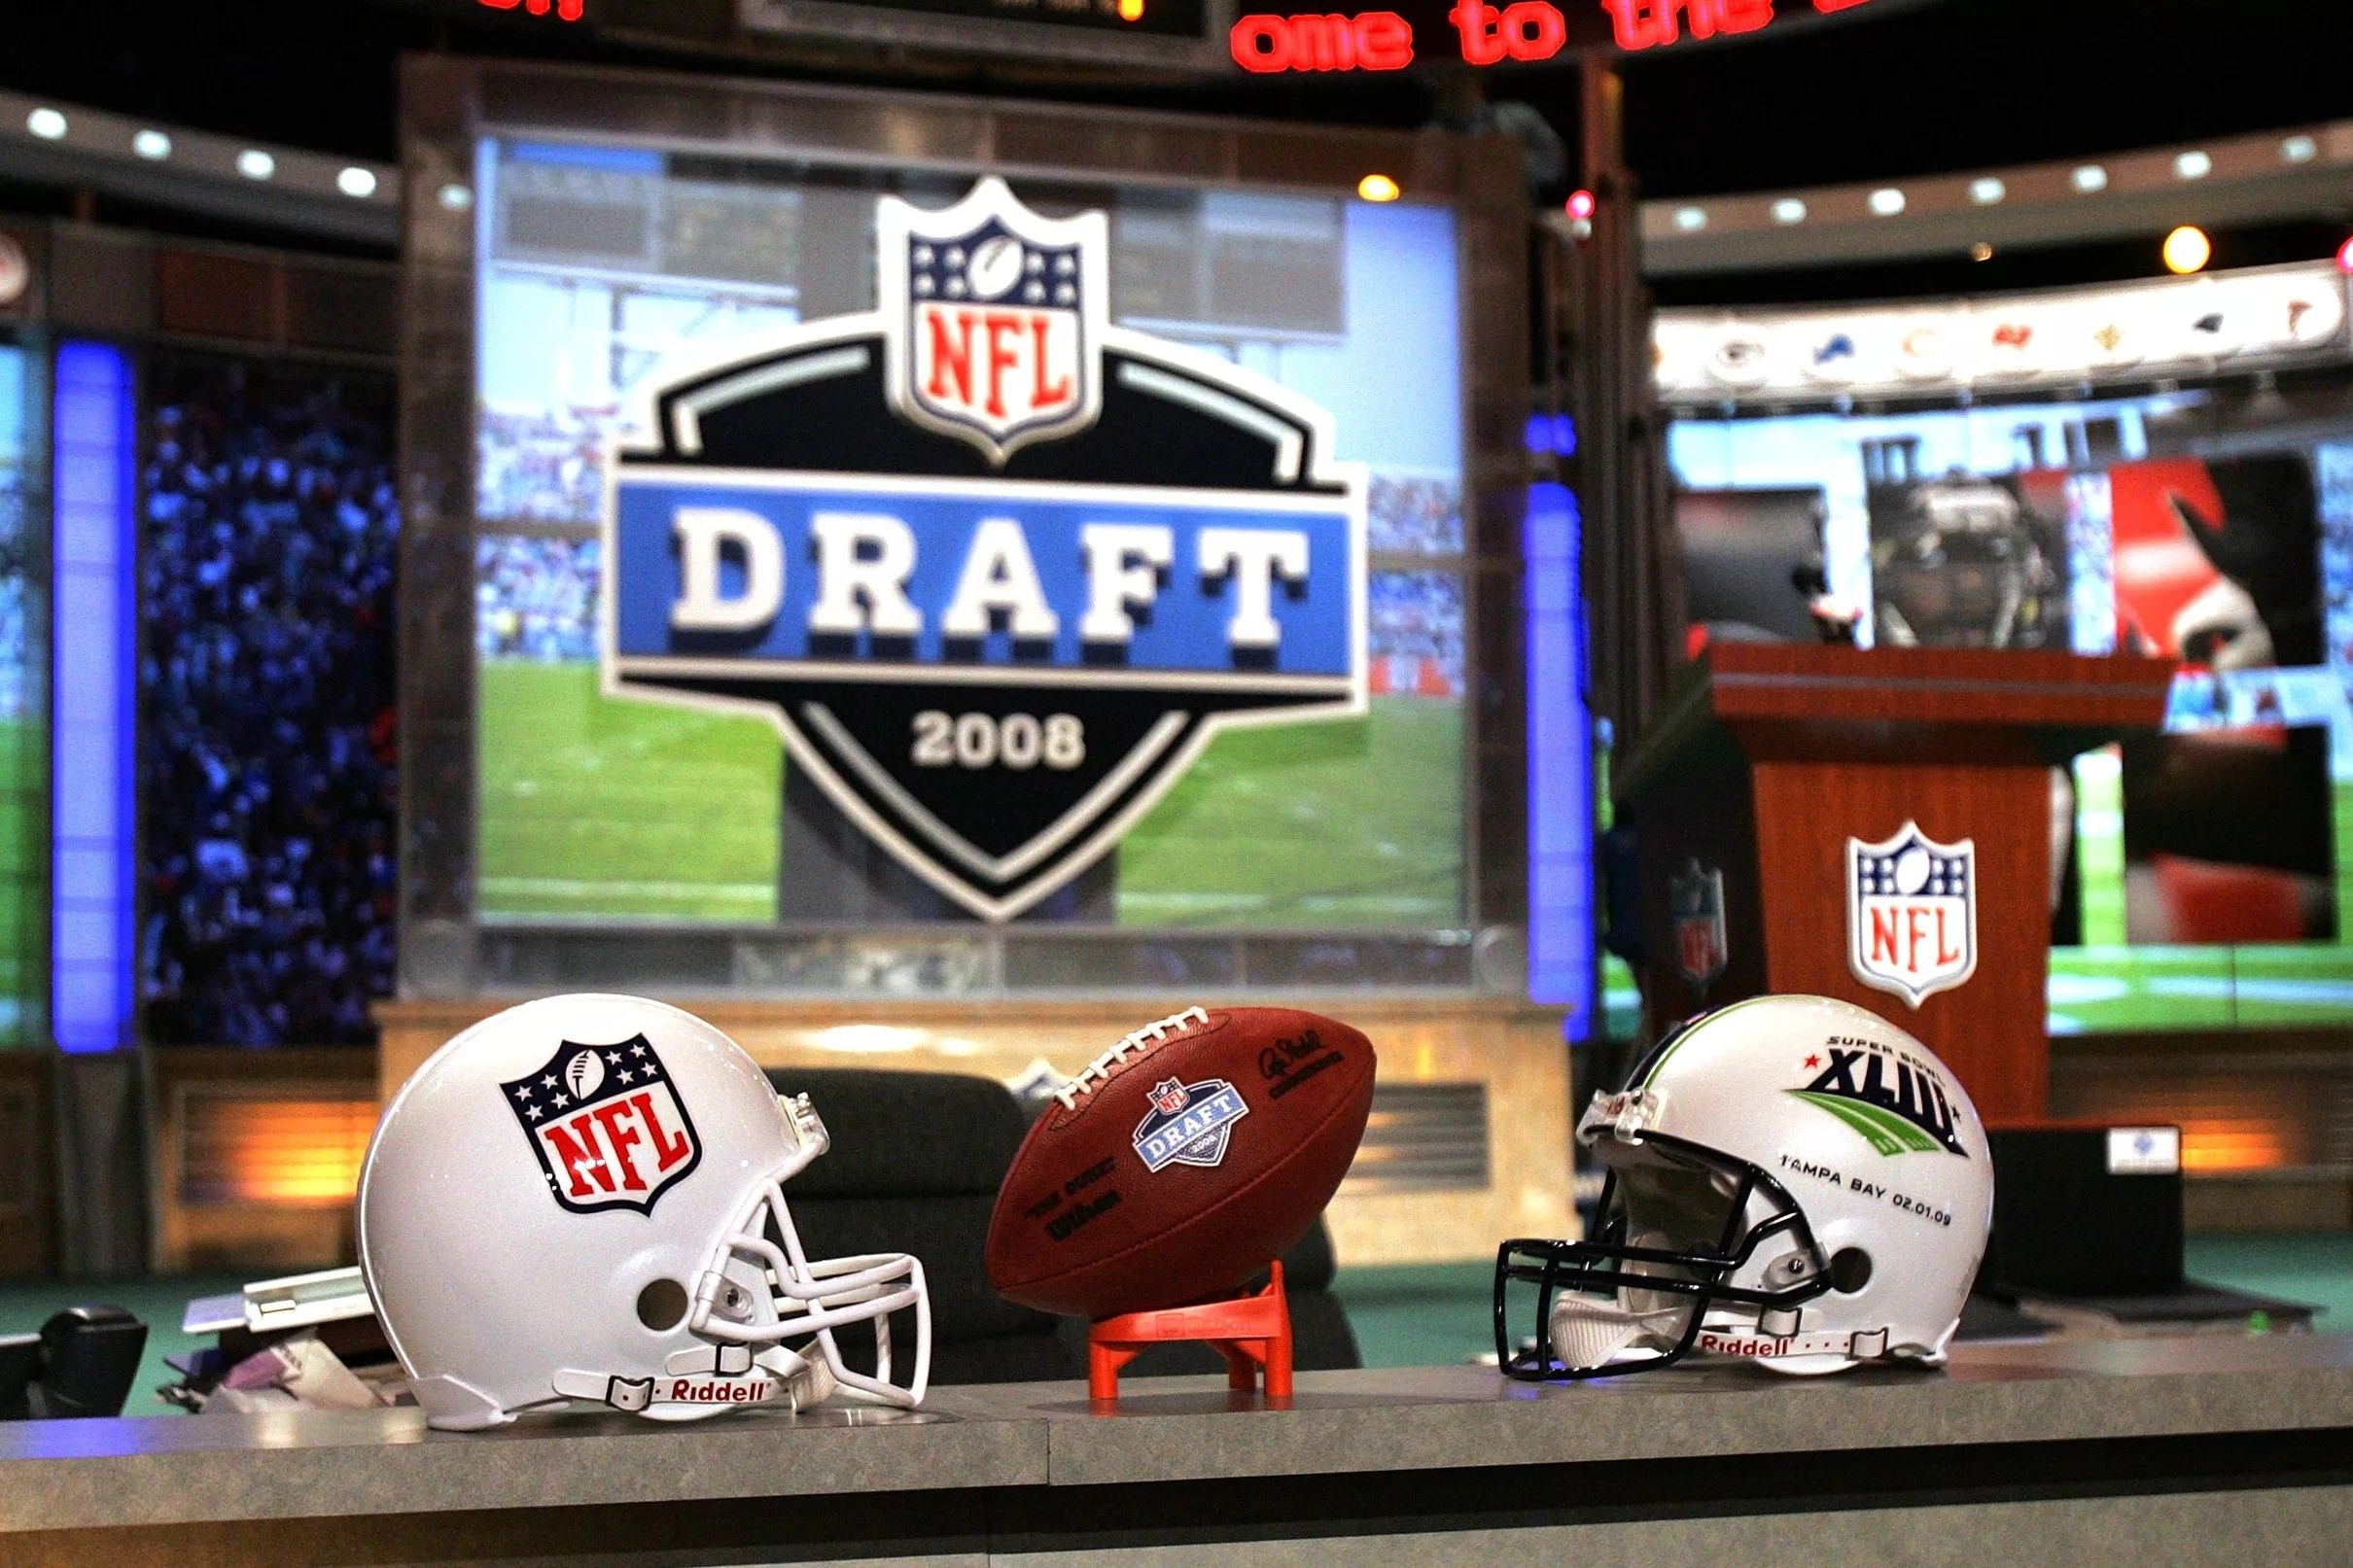 Locations For 2021 And 2023 Nfl Drafts Announced, Nothing